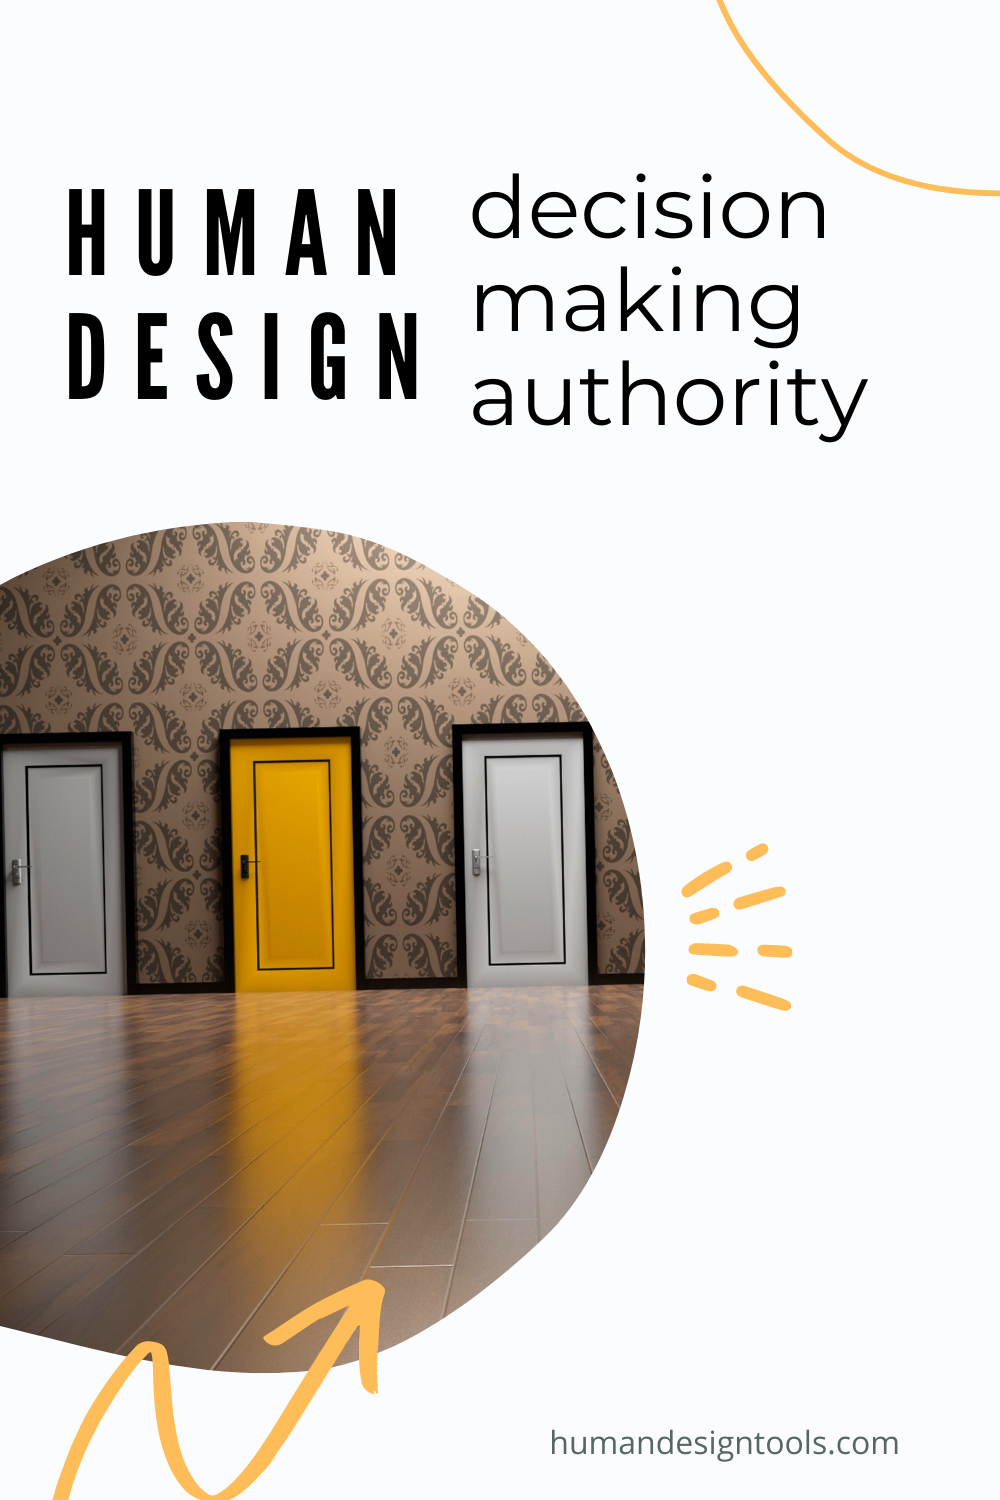 Decision Making Authority and Human Design